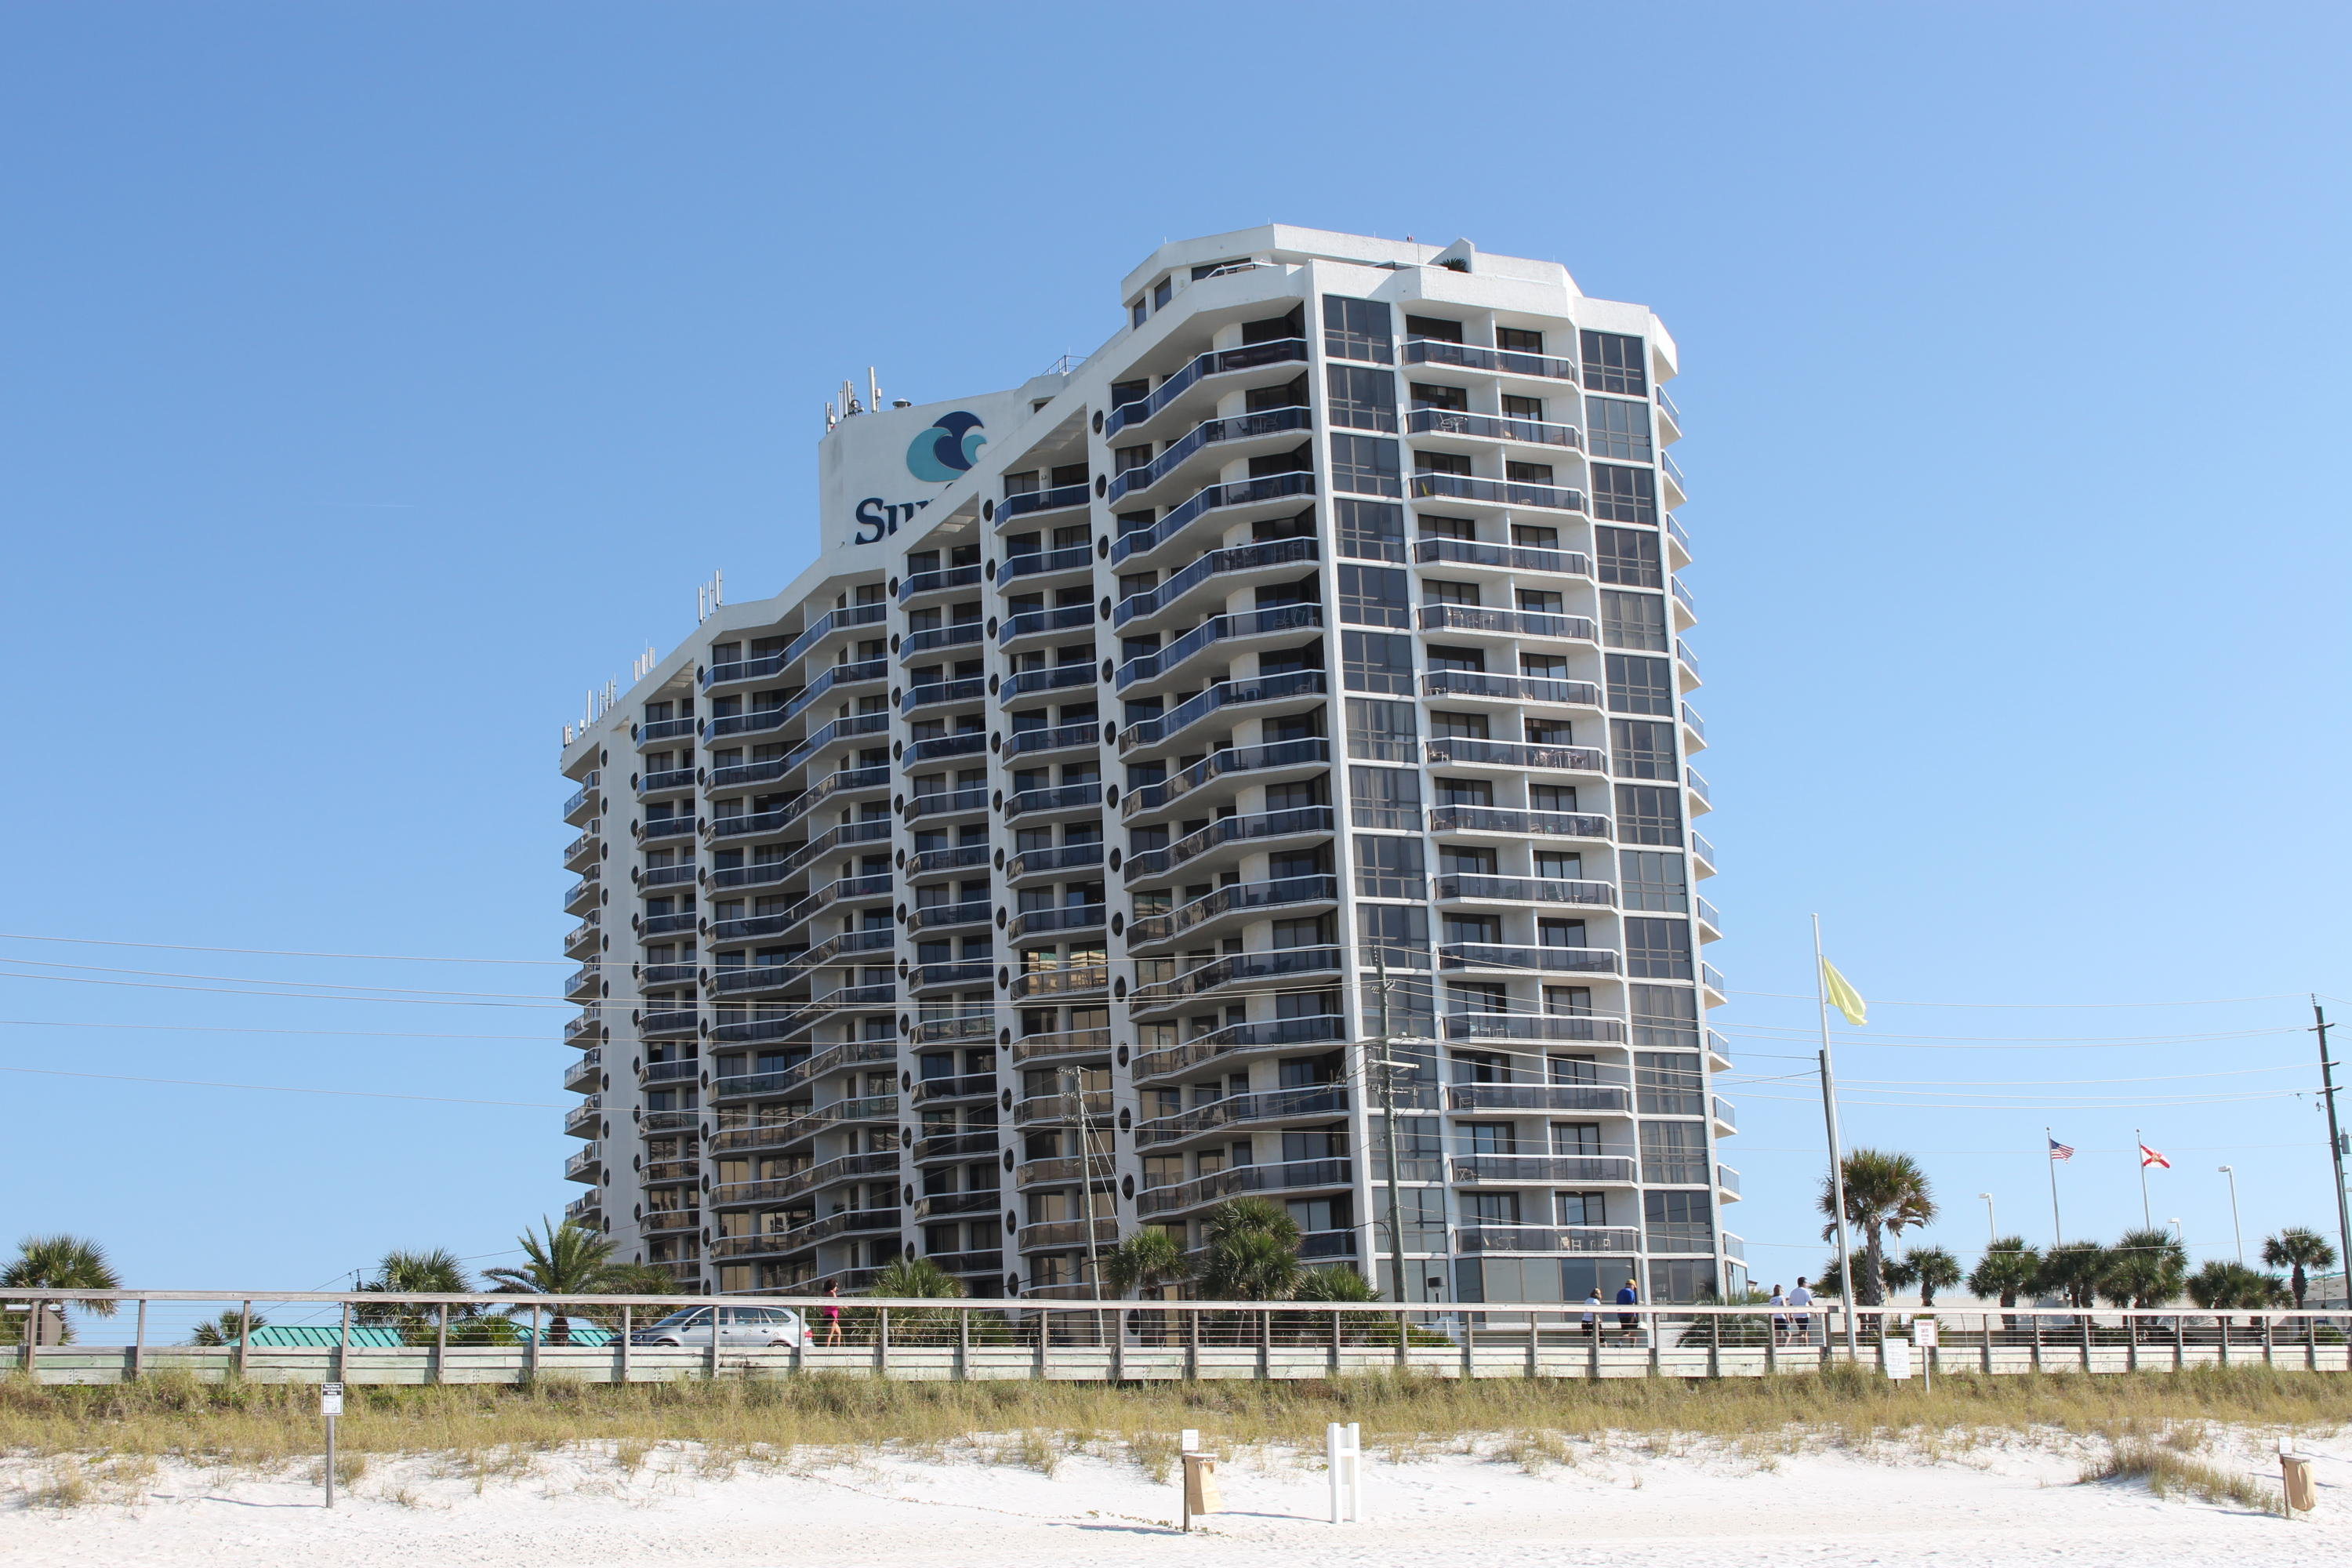 The luxurious Surfside is one of the best condo complexes up and down this beach. Property has a fabulous restaurant, spa, salon, weight room, large sports deck with tennis and basketball, huge pool deck, street walk over for easy access to the beach bar and the beautiful sandy beaches. There are even interior walkways between the units which is a huge plus. You will feel like you are in a five star hotel! This fully furnished ground floor 1-bed 1-bath condo unit has been remodeled with a big granite breakfast bar, large tiled shower in the fabulously remodeled bath, bedroom has a king size bed, and access to the large patio from bedroom and living room.  Patio even has a little gate to walk out to the beach from your back door.  Come see it today!